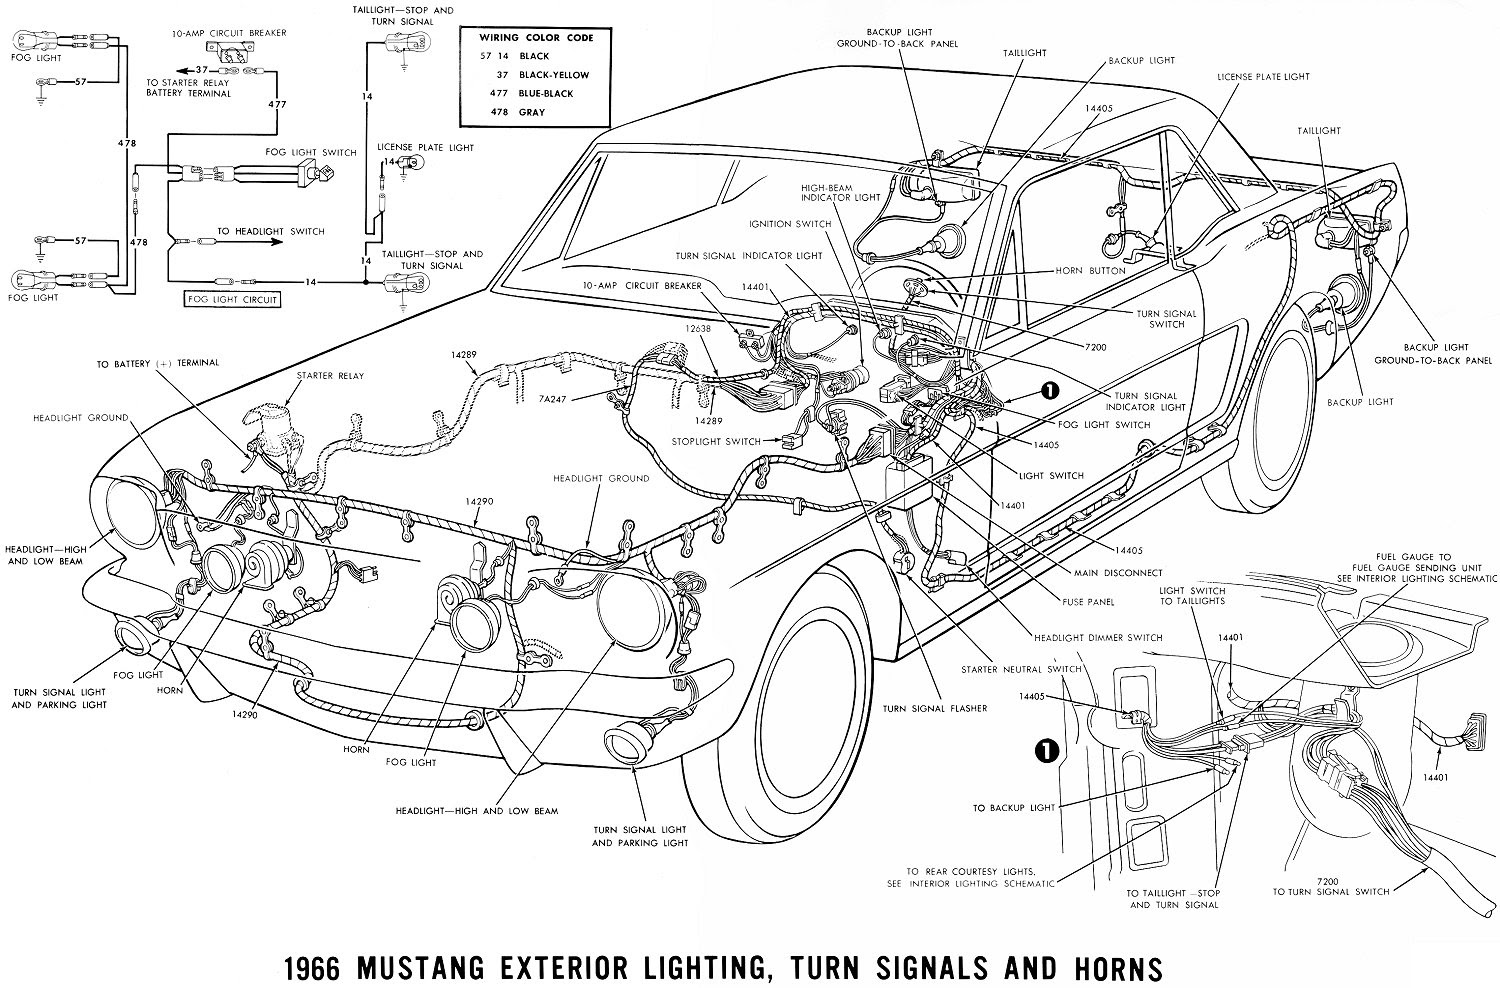 36+ 1968 Mustang Coupe Wiring Diagram Images